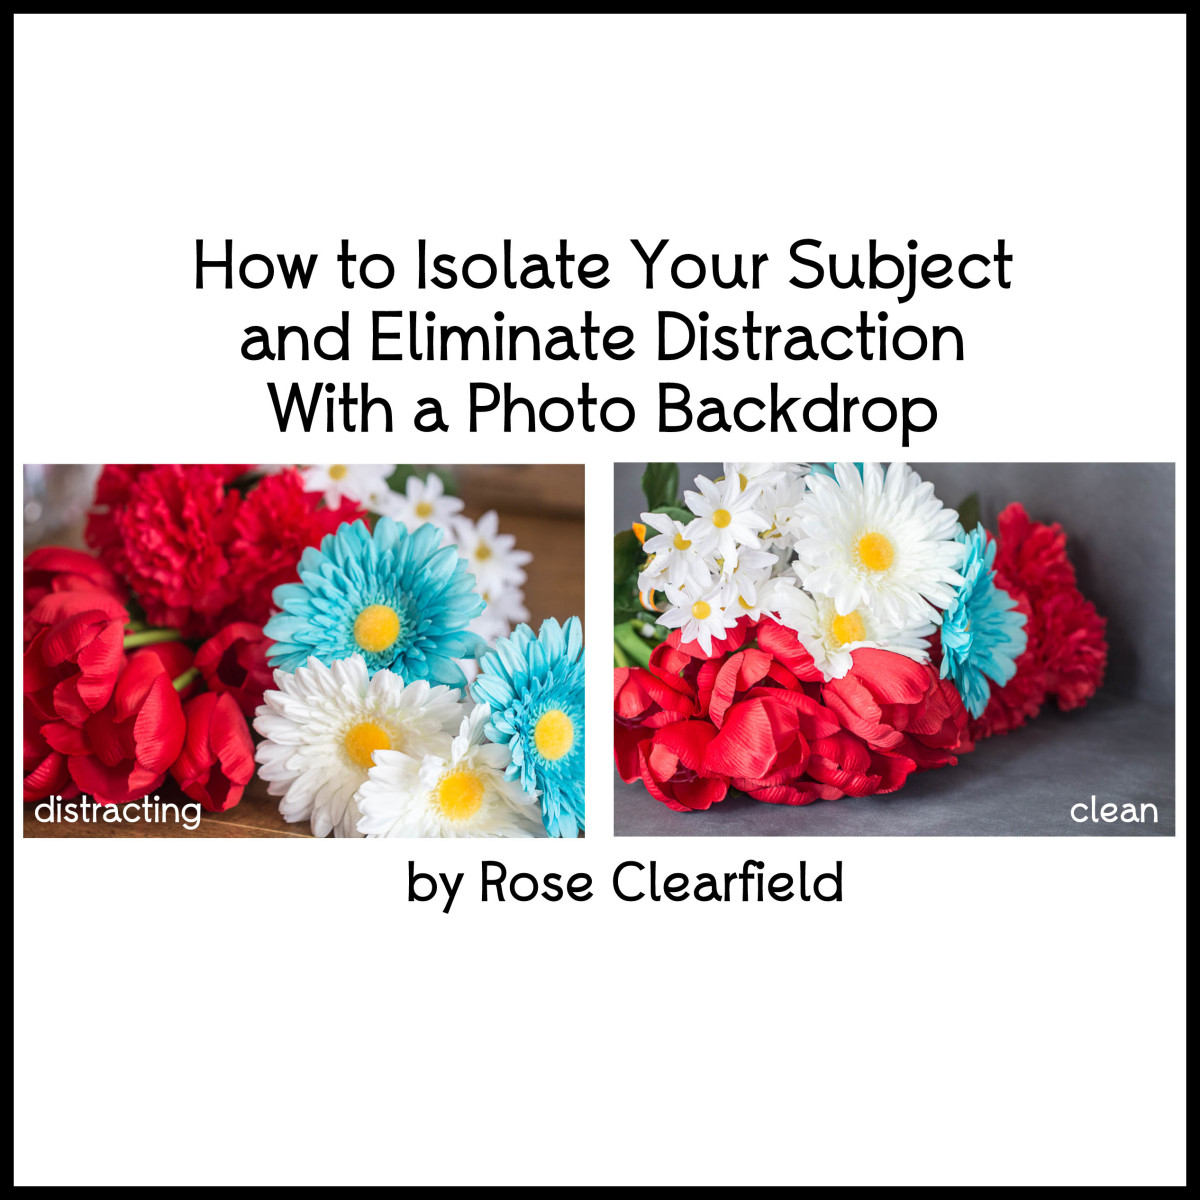 How to Isolate Your Subject and Eliminate Distraction With a Photo Backdrop